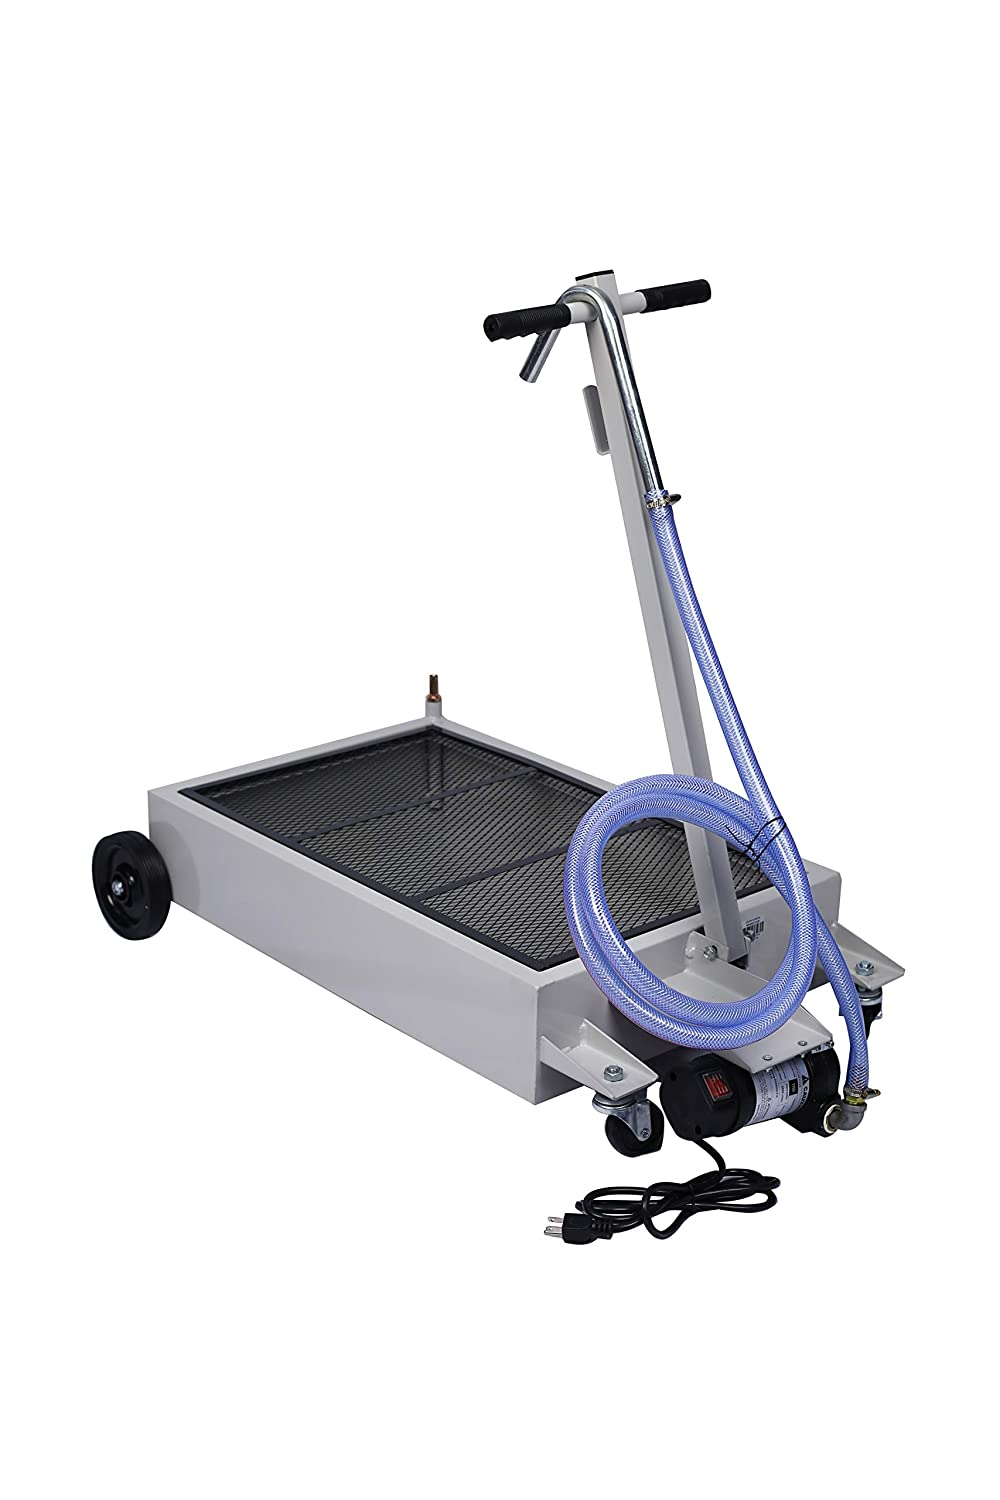 SSLine Portable 15 Gallon Oil Drain with Pan P Indefinitely Electric Low Pump Sale Special Price